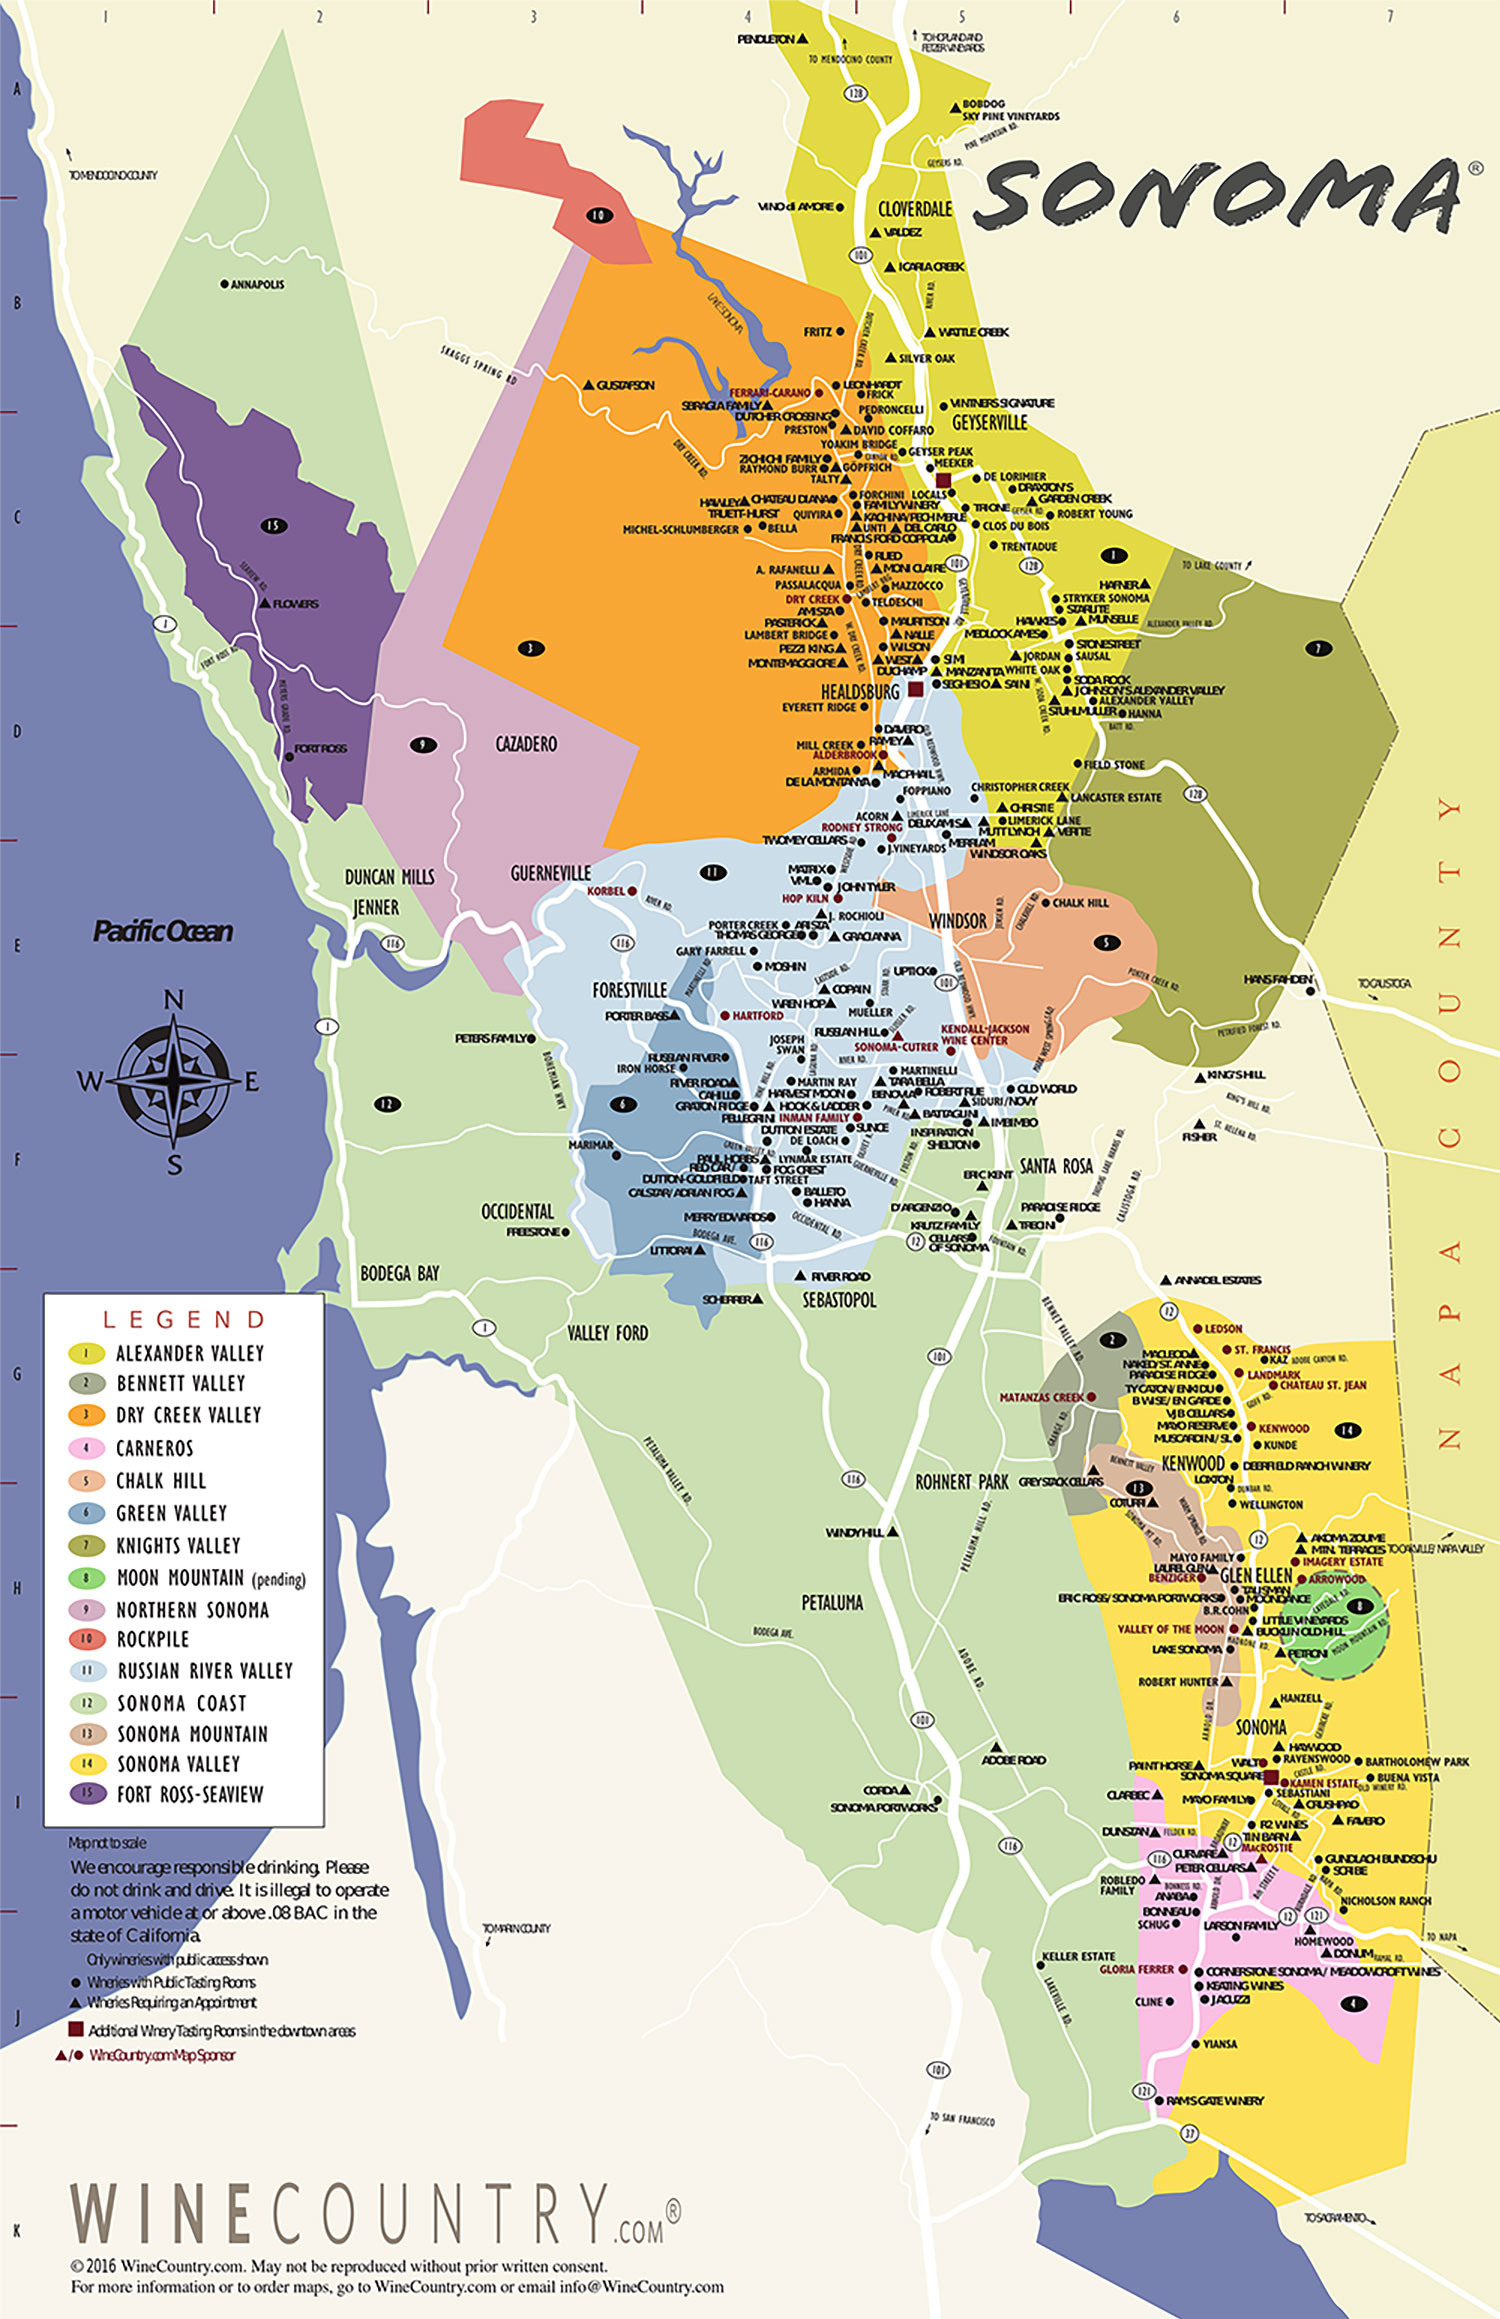 Sonoma County Wine Country Maps - Sonoma - California Wine Tours Map